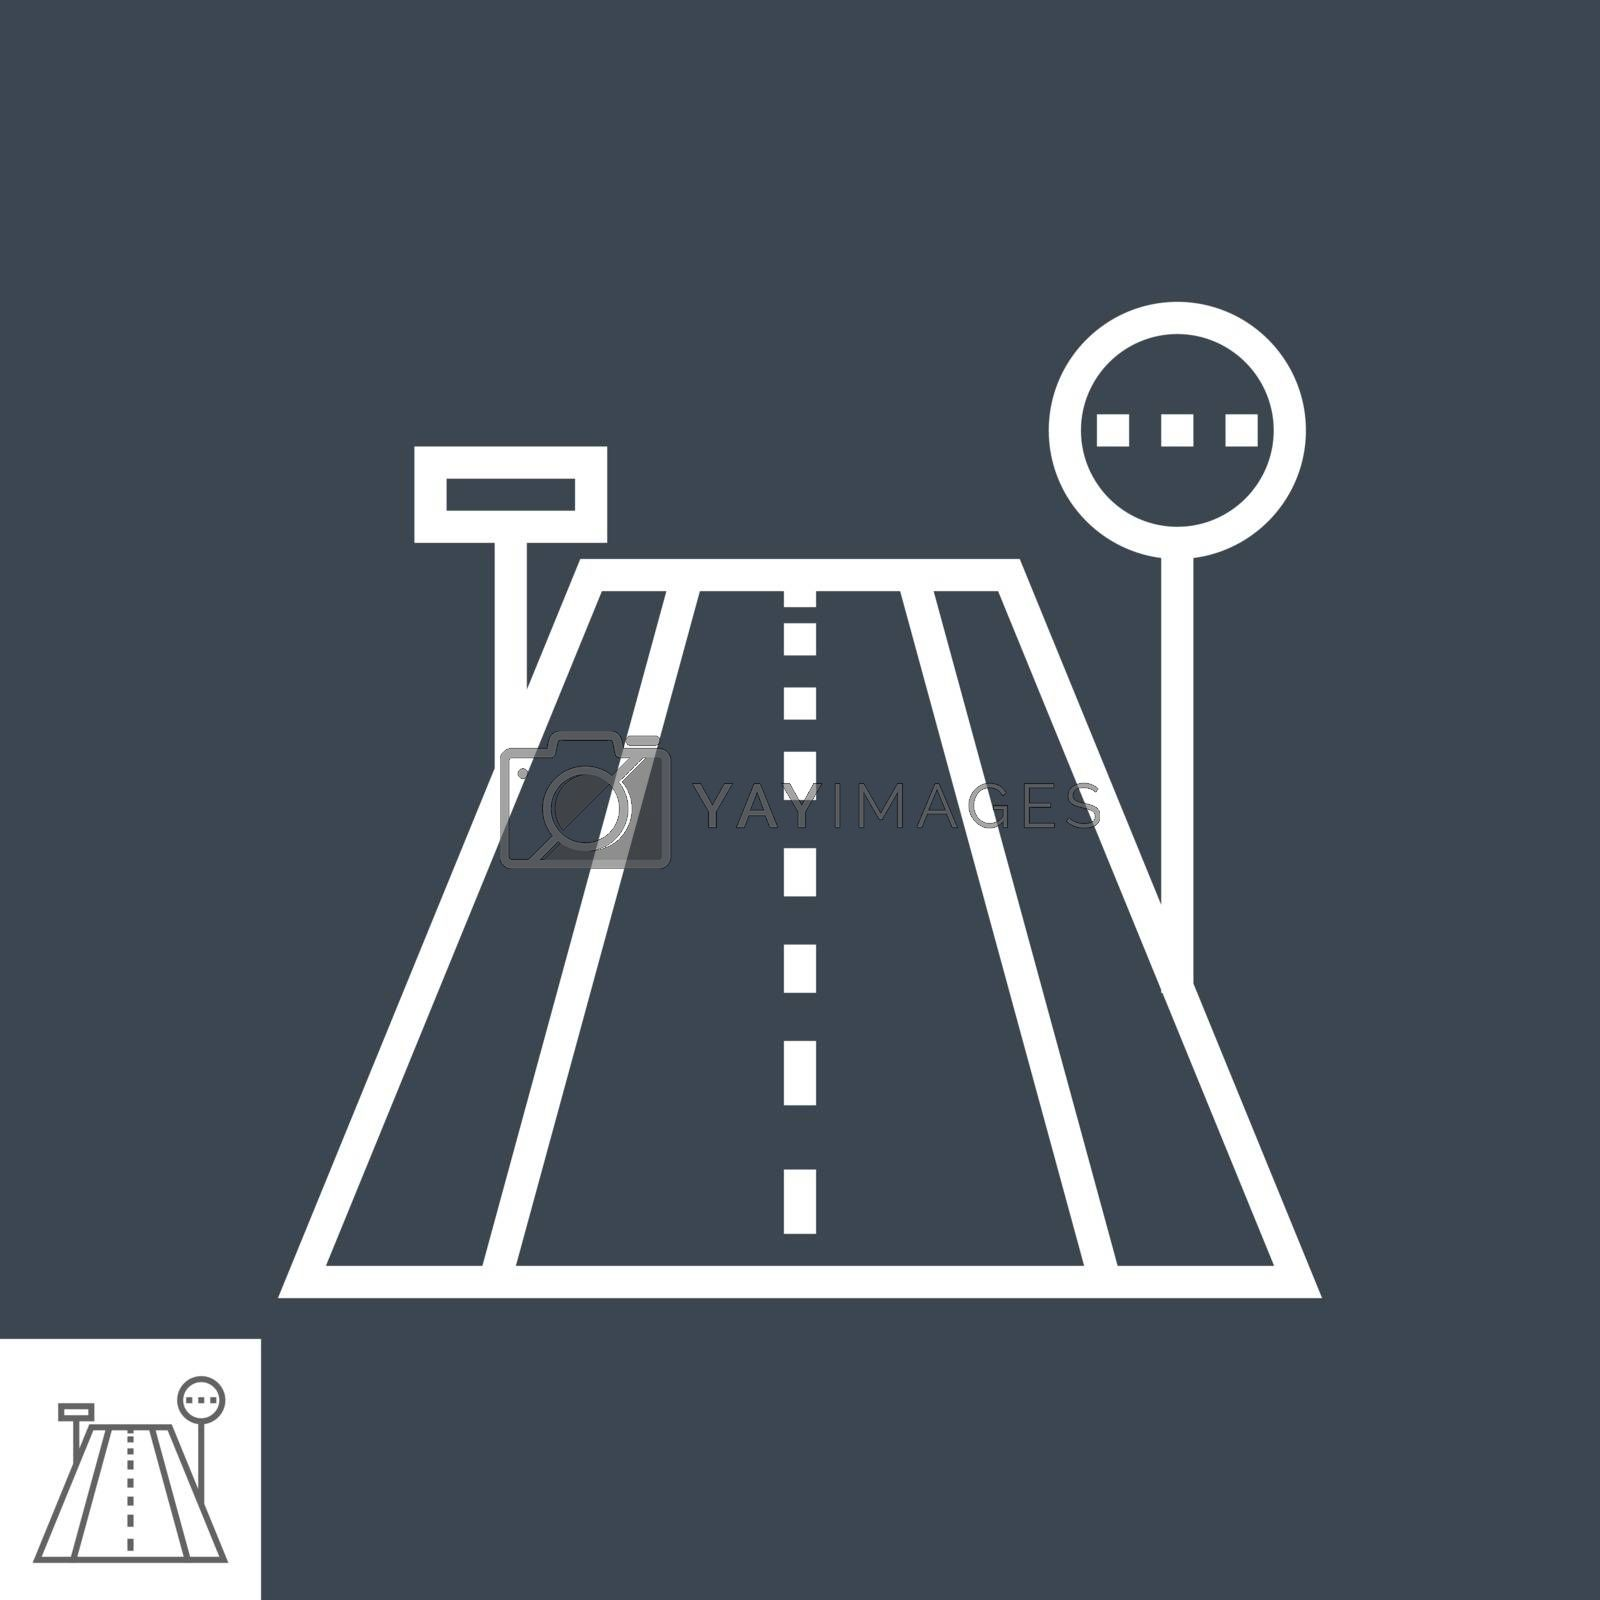 Road Thin Line Vector Icon Isolated on the Black Background.